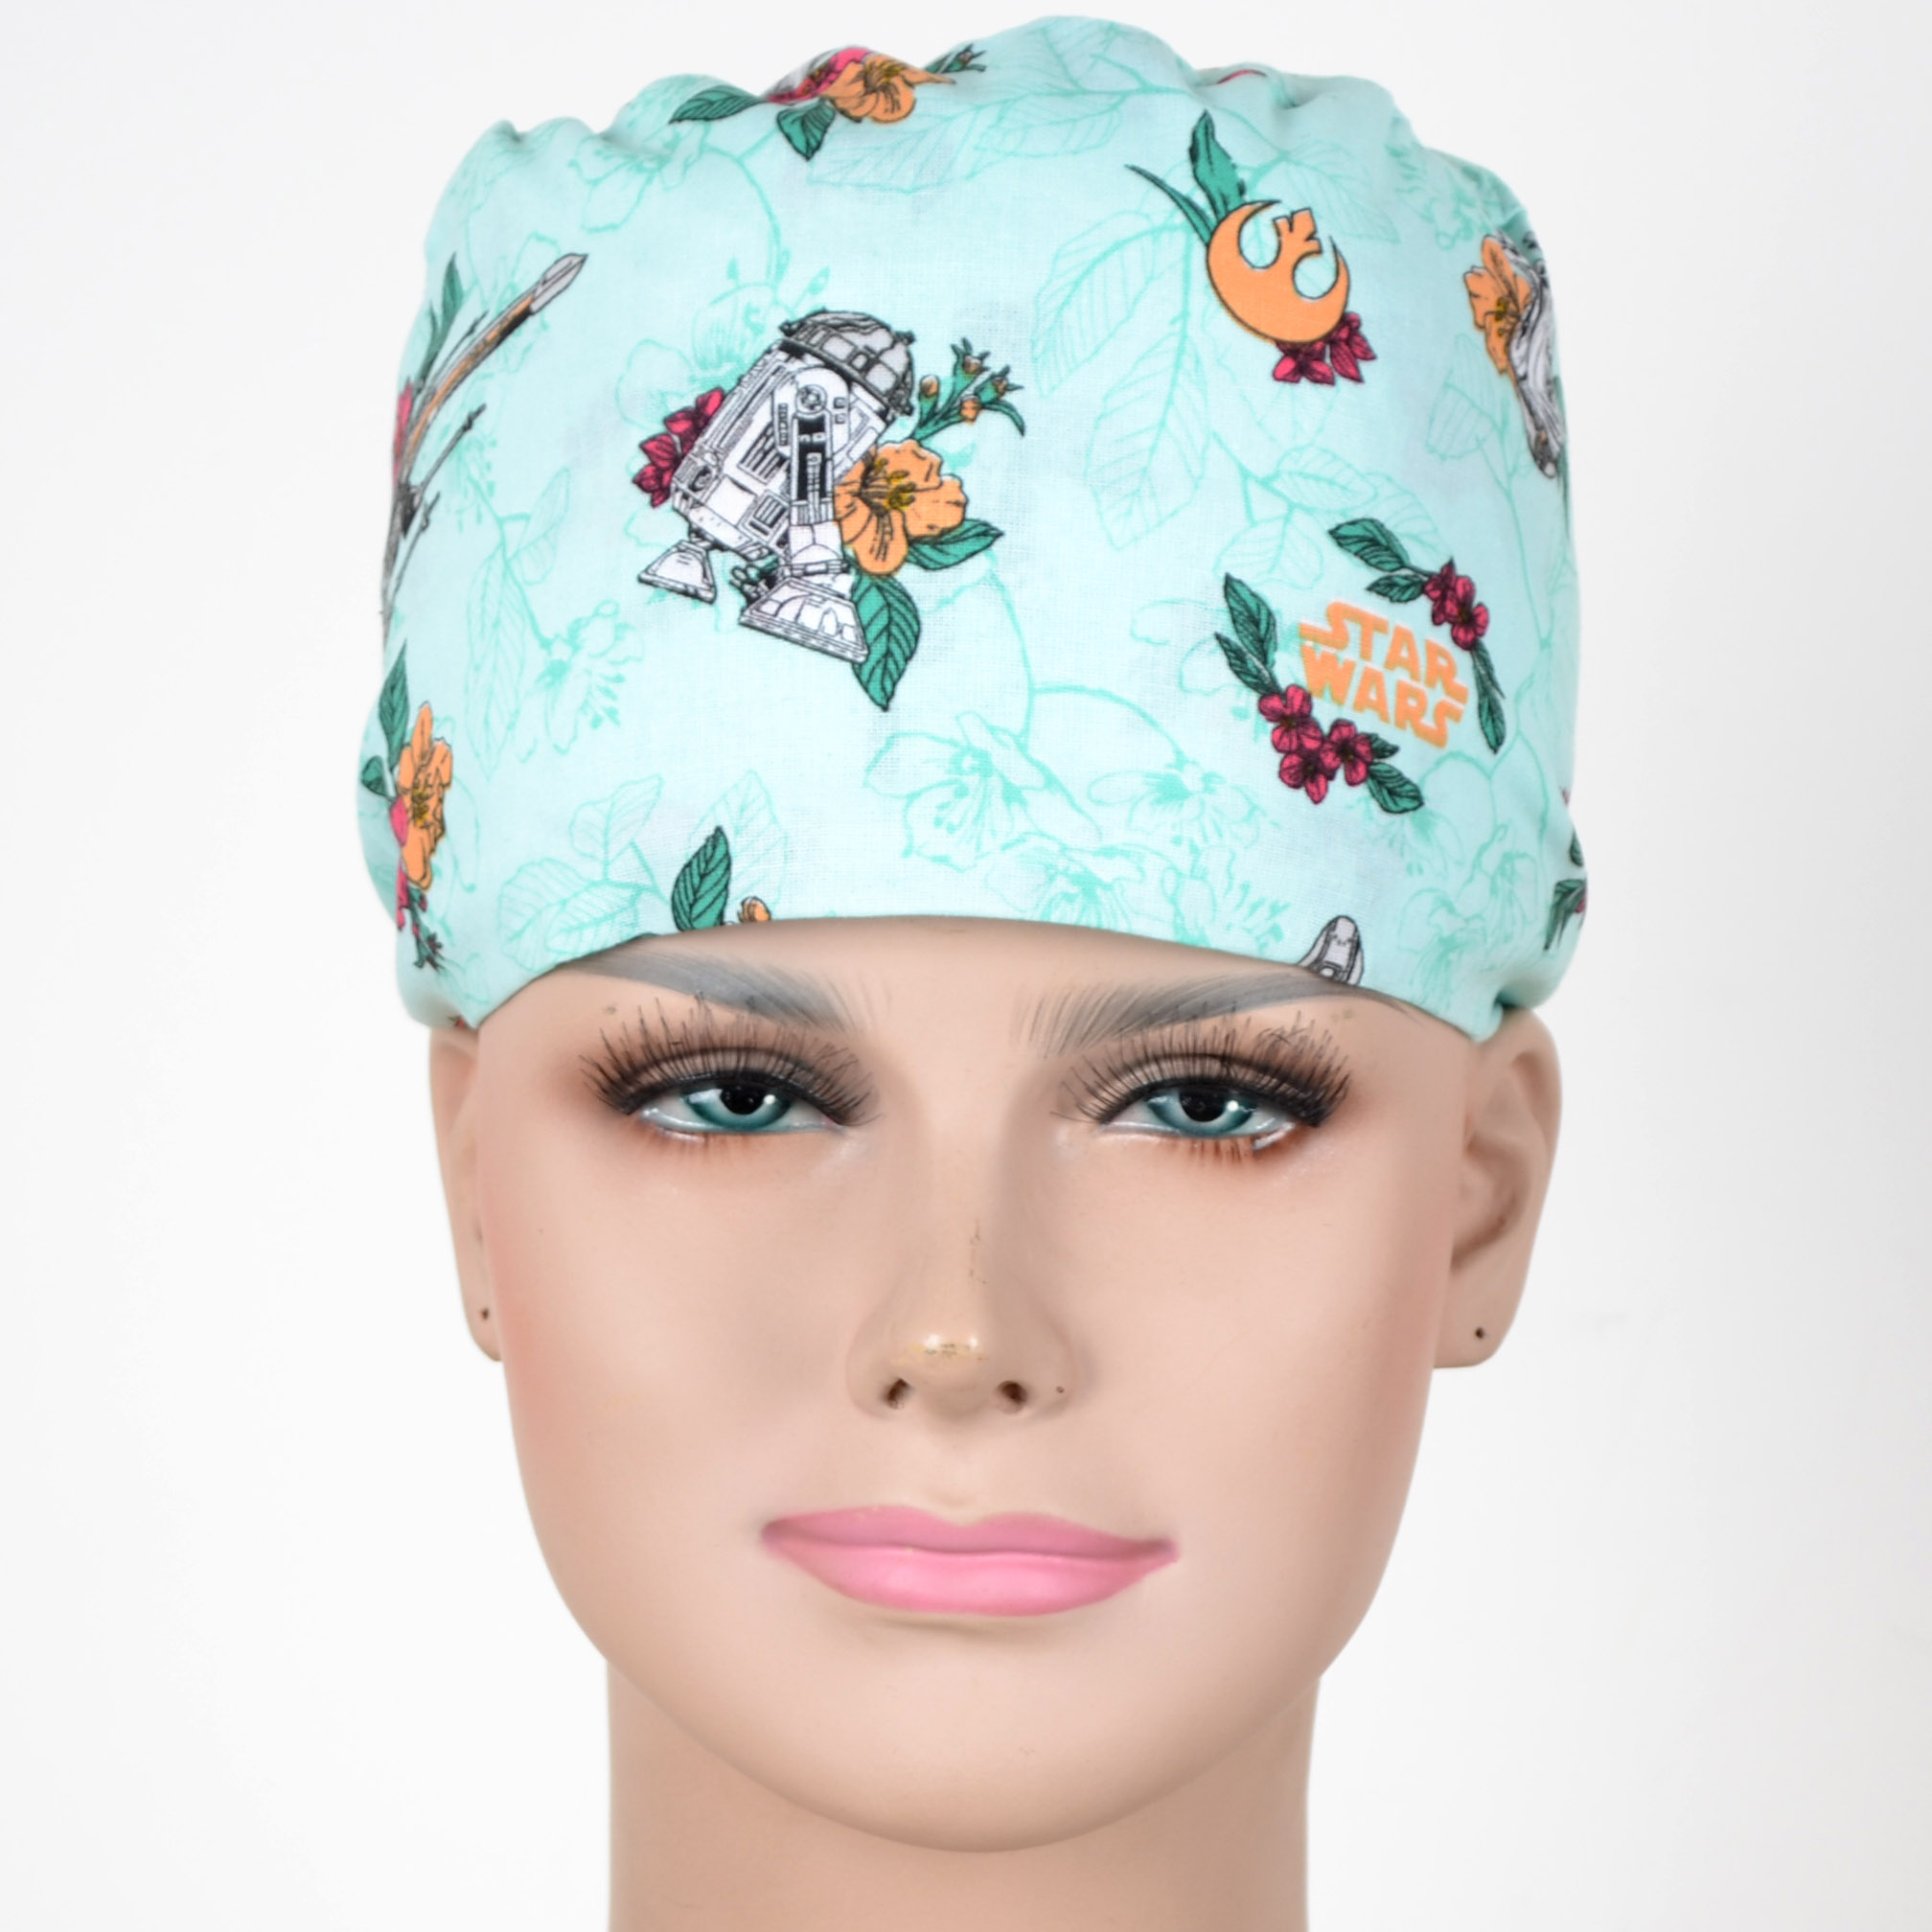 Hennar Wome Cotton Scrub Caps In Light Blue 100% Cotton  Hospital Medical Hats Print  Unisex Surgical Caps Mask